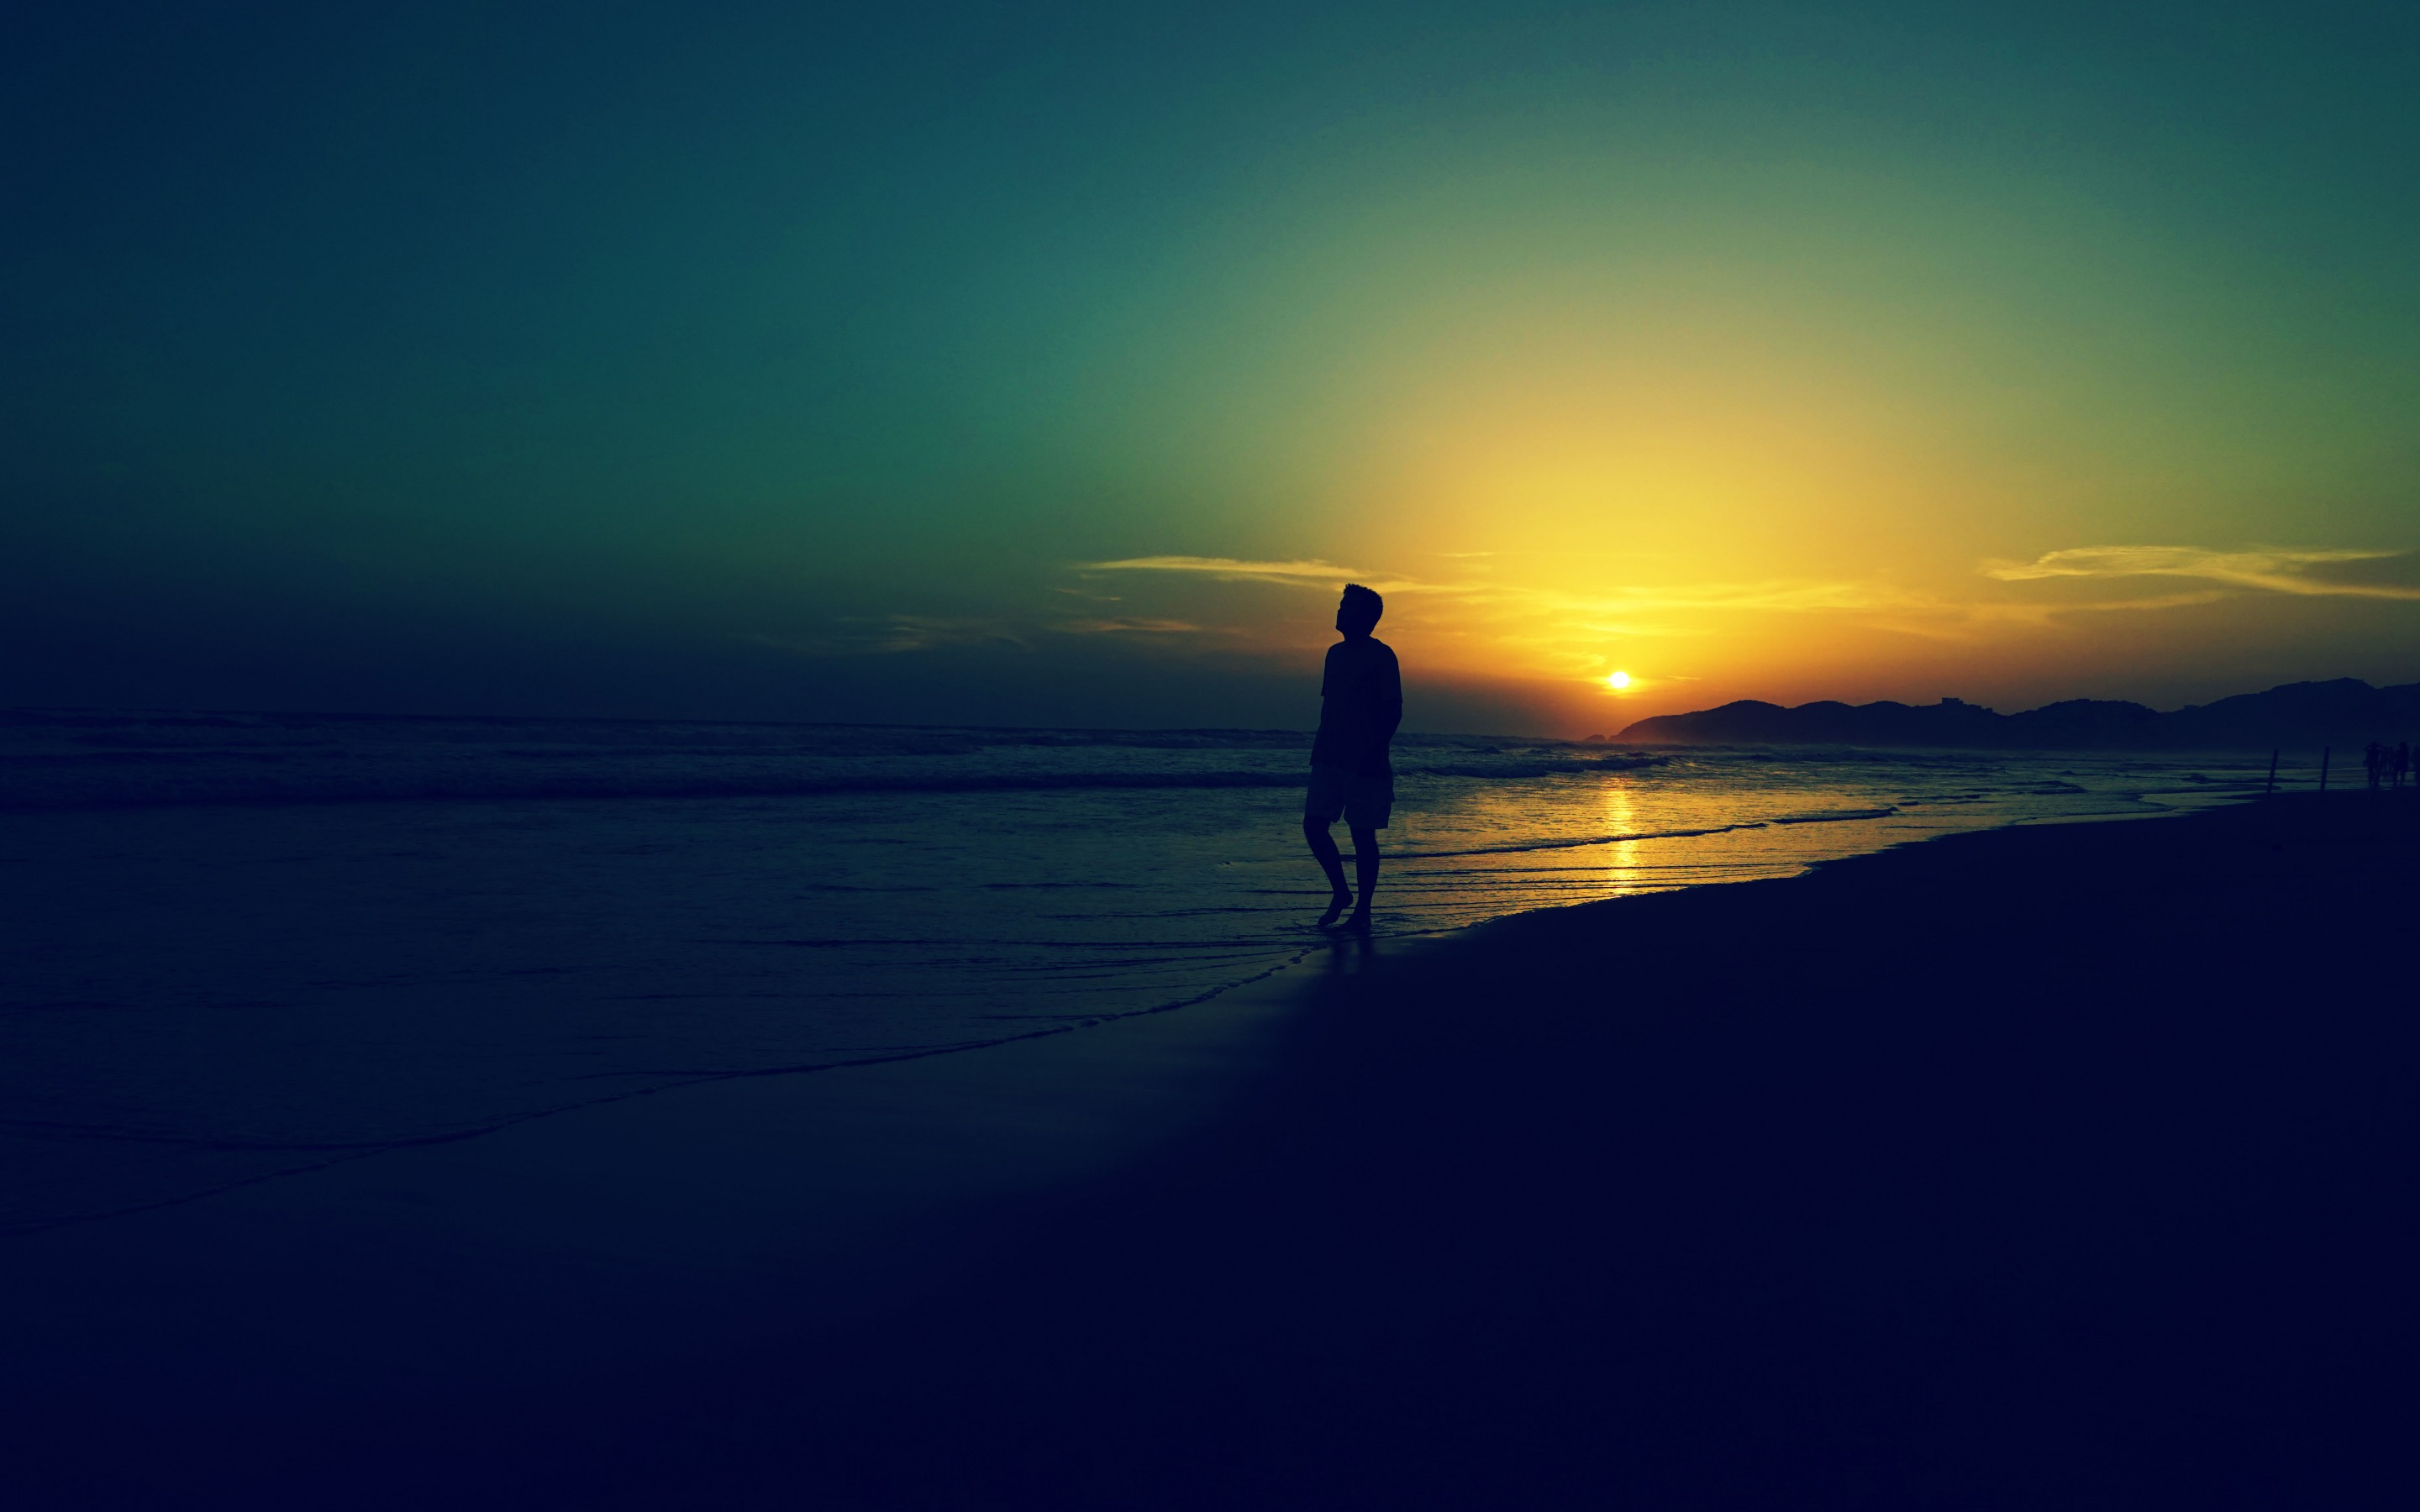 sad alone man at sunset beach waves wallpapers 2880x1800 411391